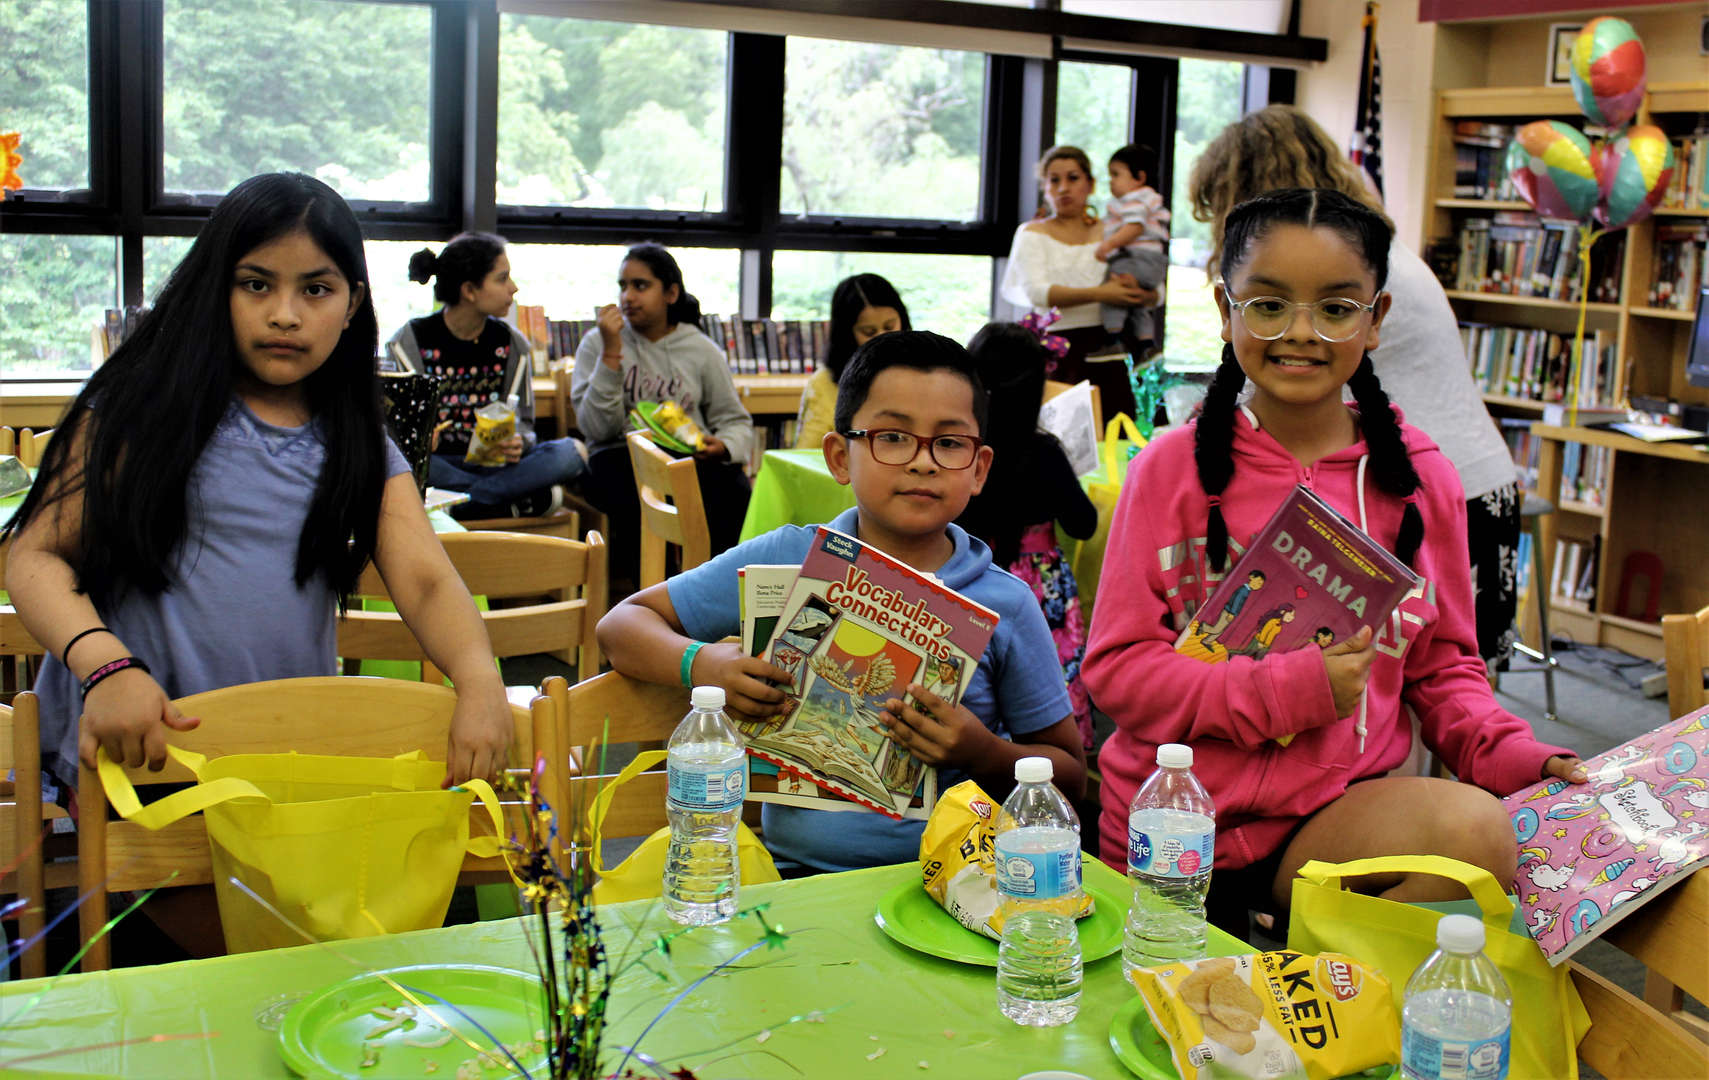 Students show off books and other gifts they received at the luncheon.